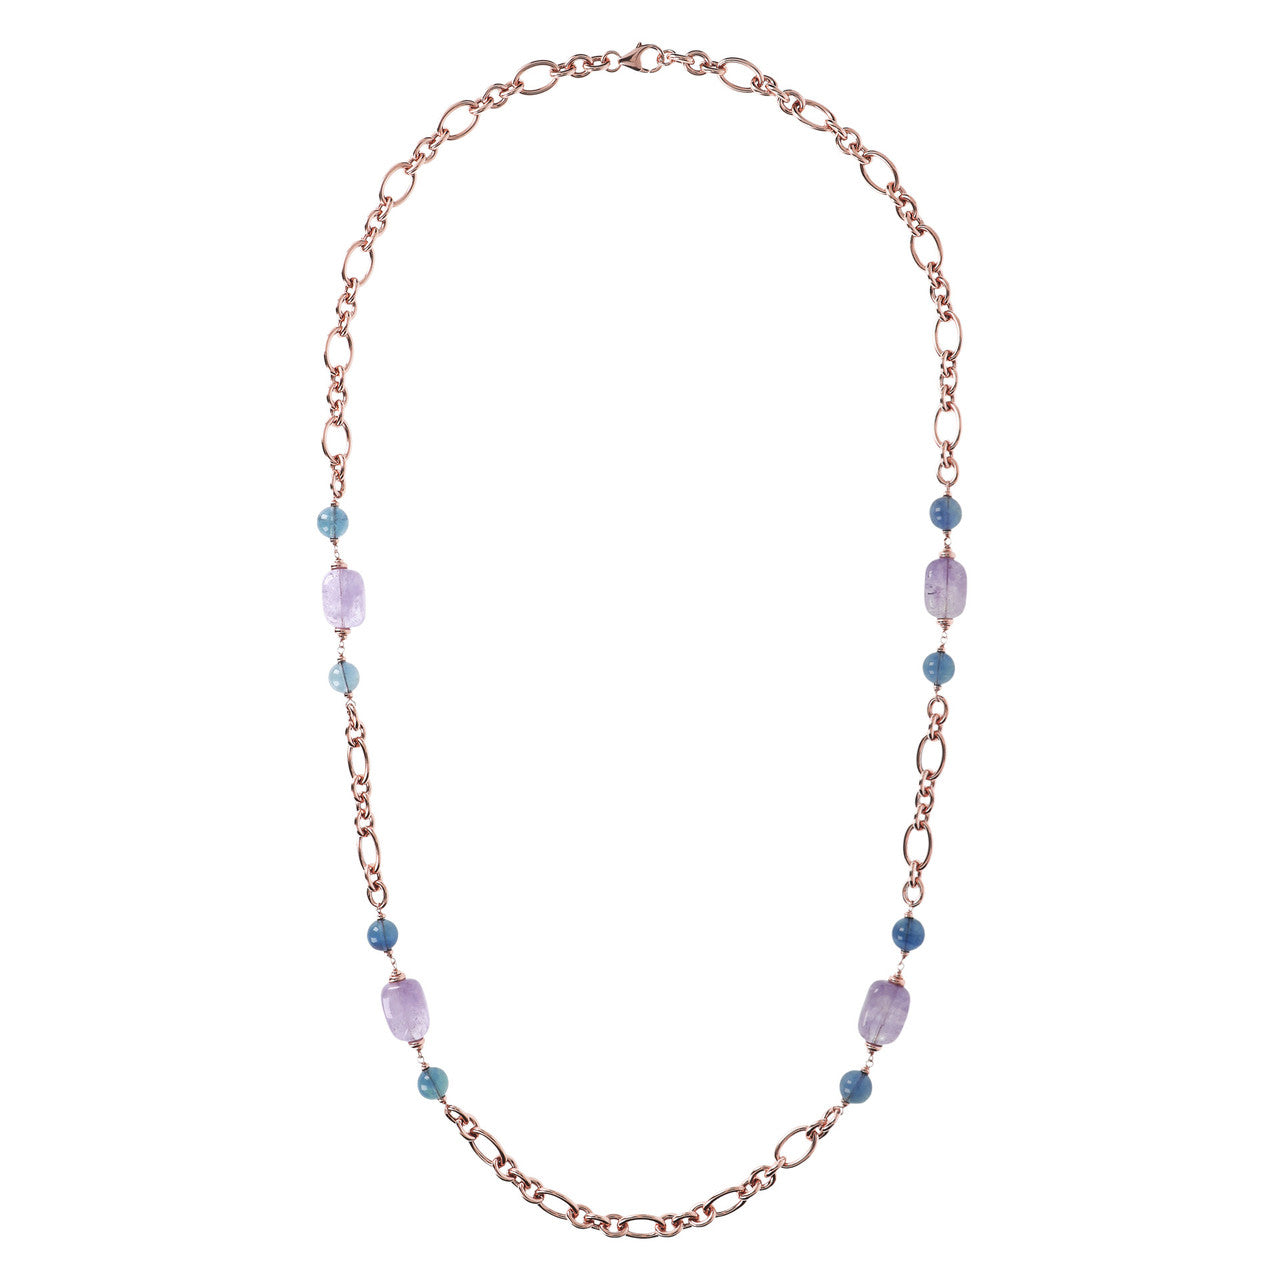 Amethyst and Fluorite Long Necklace